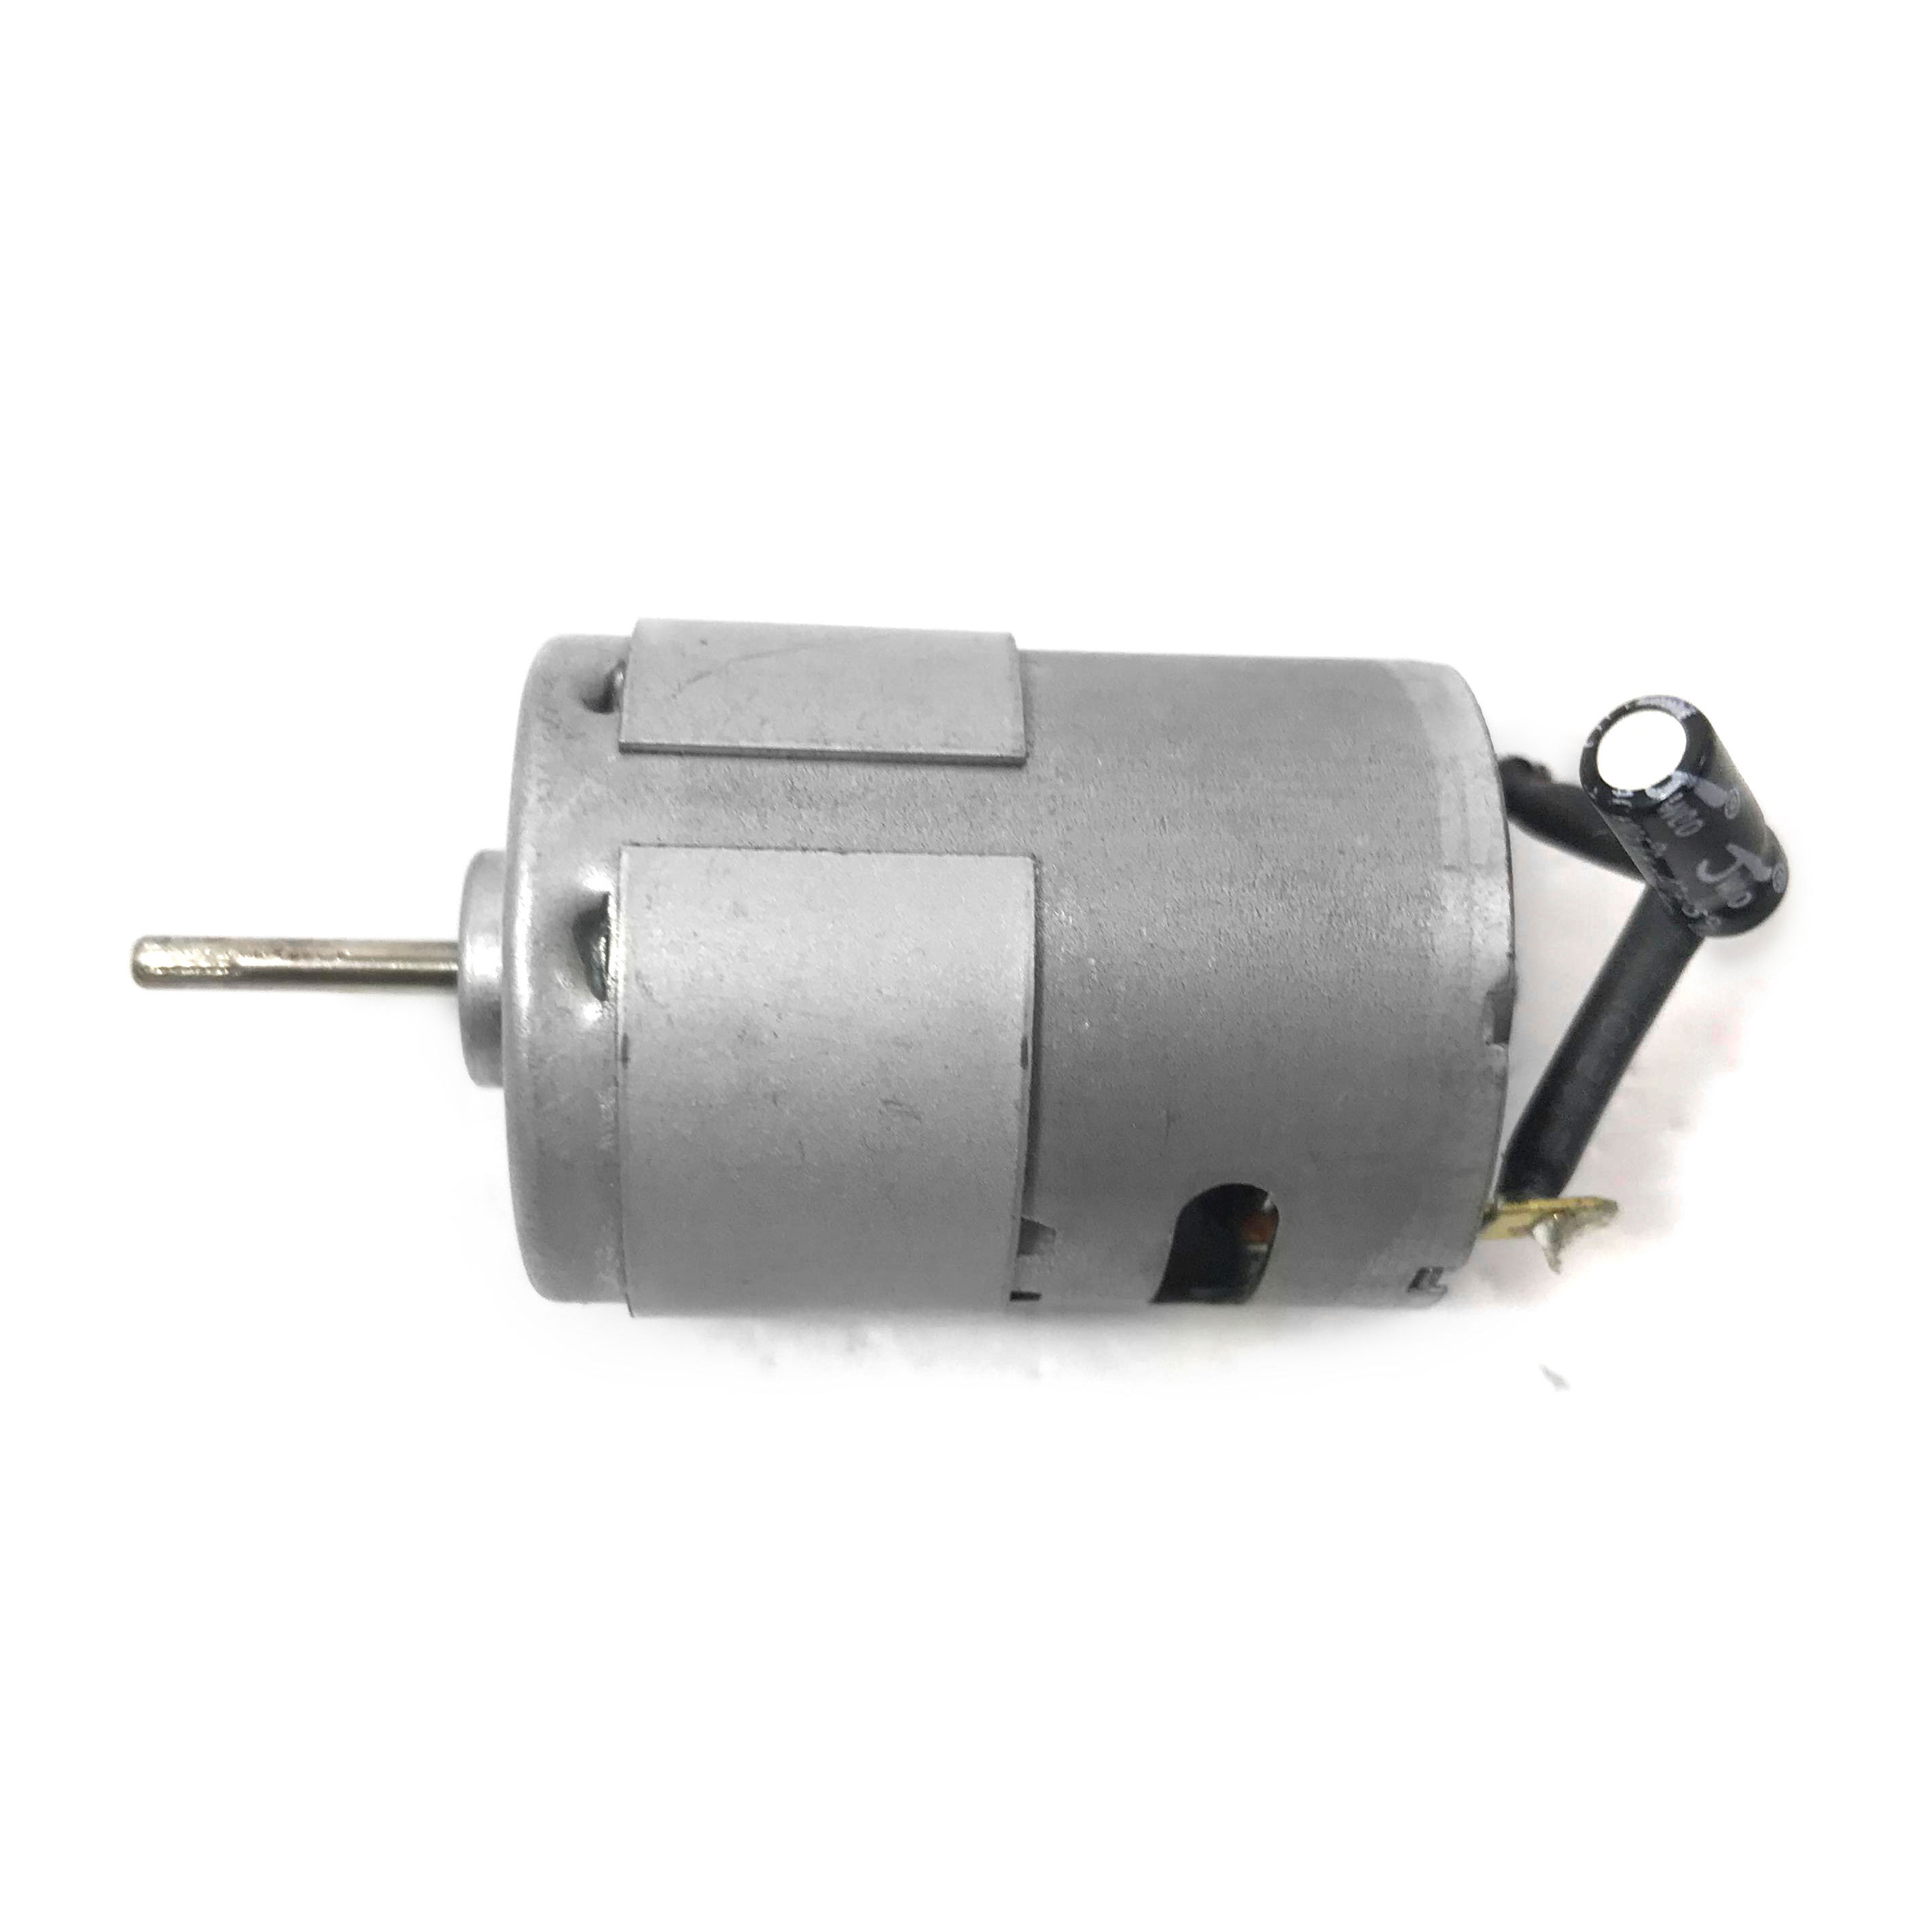 Good Price Customizable 12 Volt 16000RPM CY-385SA DC Mini Brush Motor for Home Appliance and Popcorn Machine